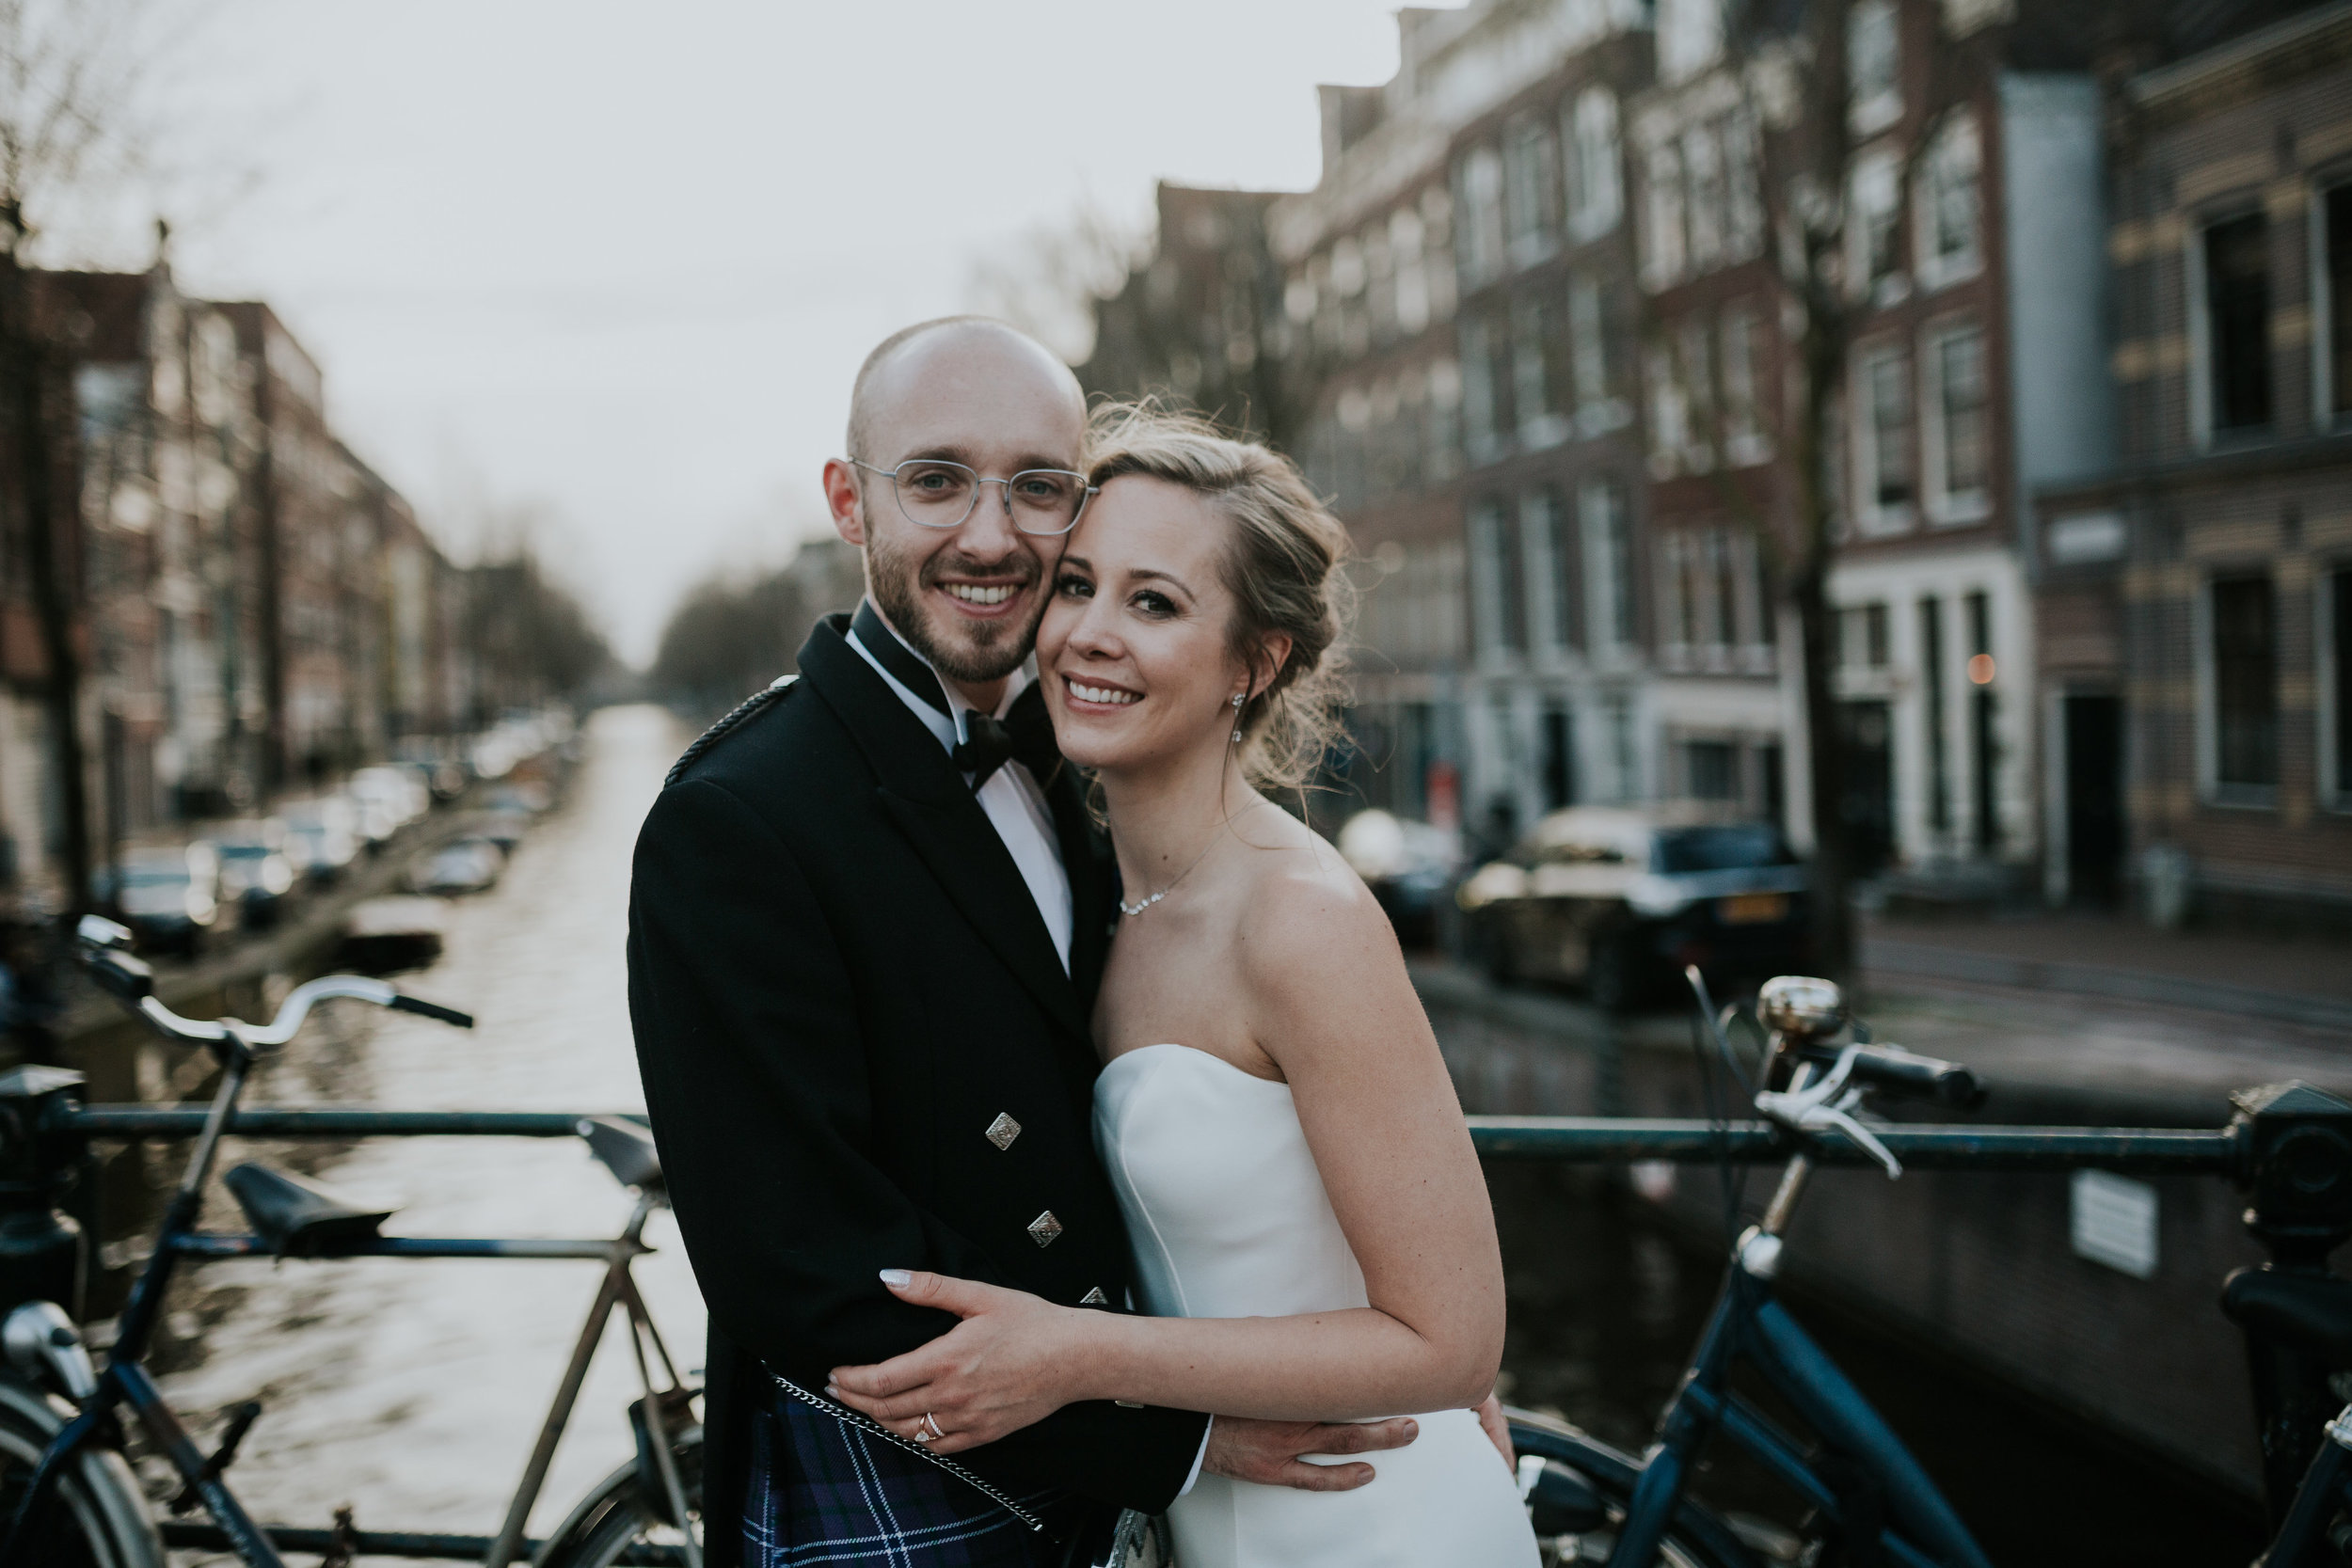 A.P Bloem florist bruid bruidgom bride groom bruidsboeket bride bridesmaids bouquet boeket bloemist evenement bloemen amsterdam luxury golden age guirlande garland florals pulitzer wedding bruiloft trouwen marriage styling liefde peonies poppies papaver goudeneeuw stilllife dutch